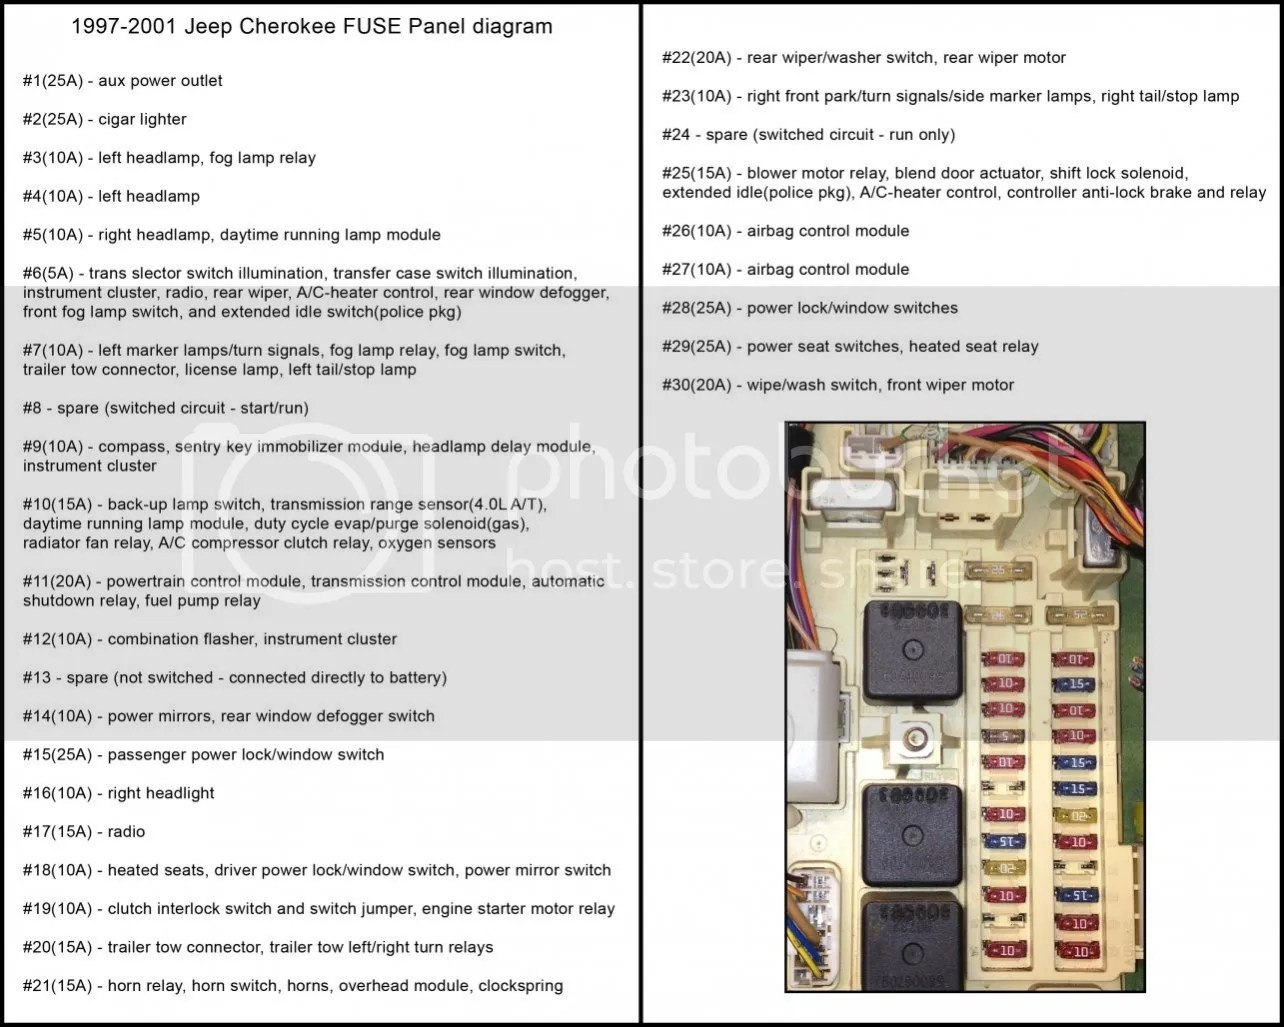 hight resolution of 1999 cherokee fuse panel diagram jeepforum com rh jeepforum com bussmann fuses cross reference bussmann fuse